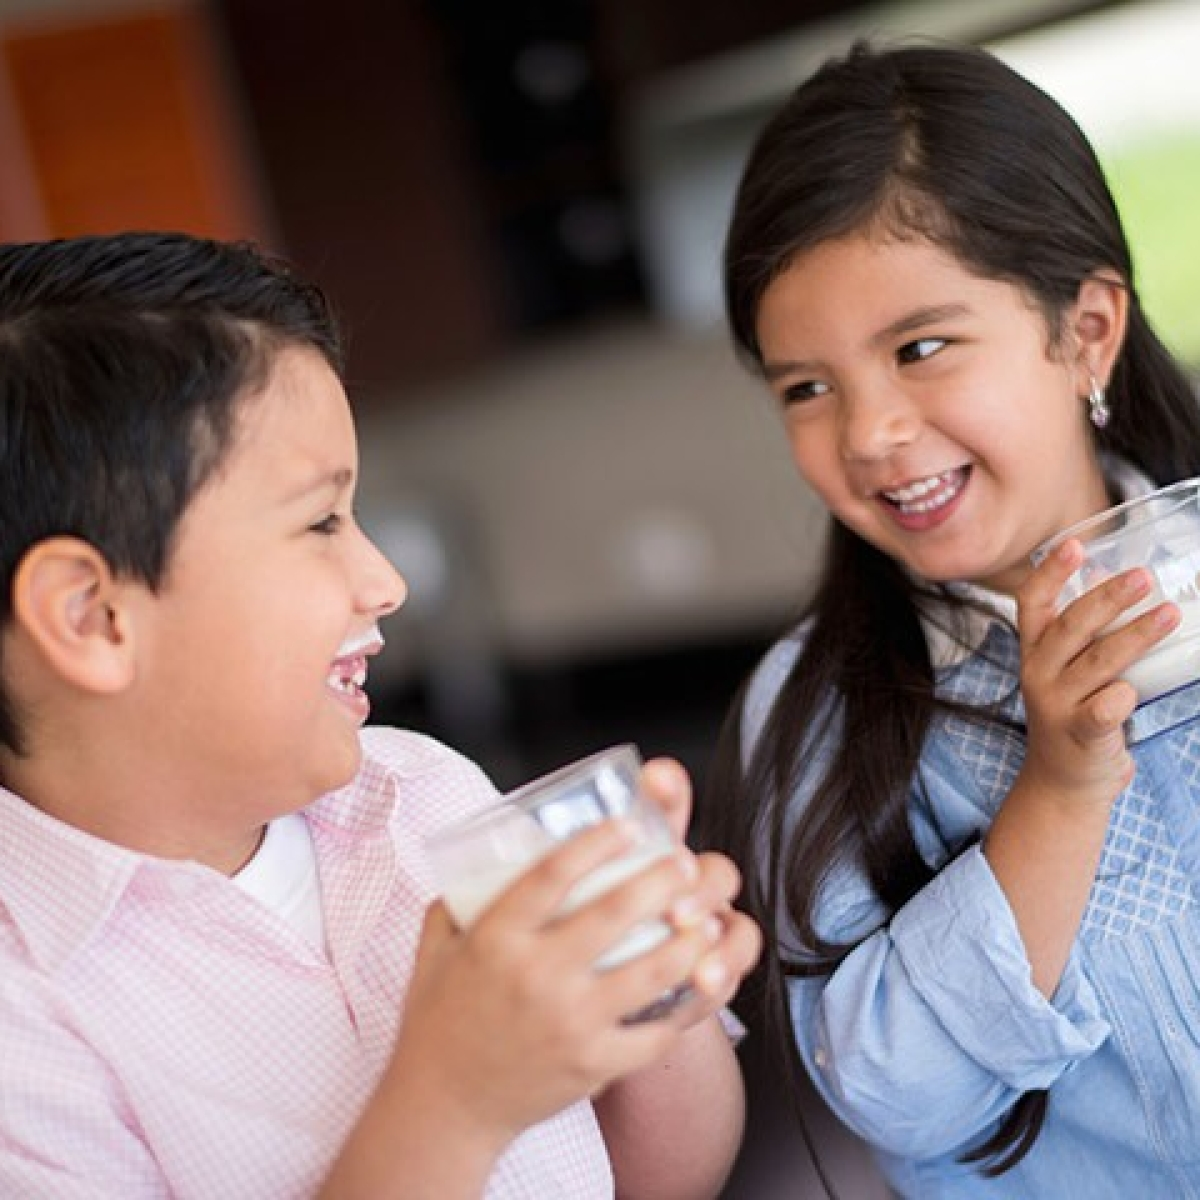 Probiotics have different effects on boys and girls